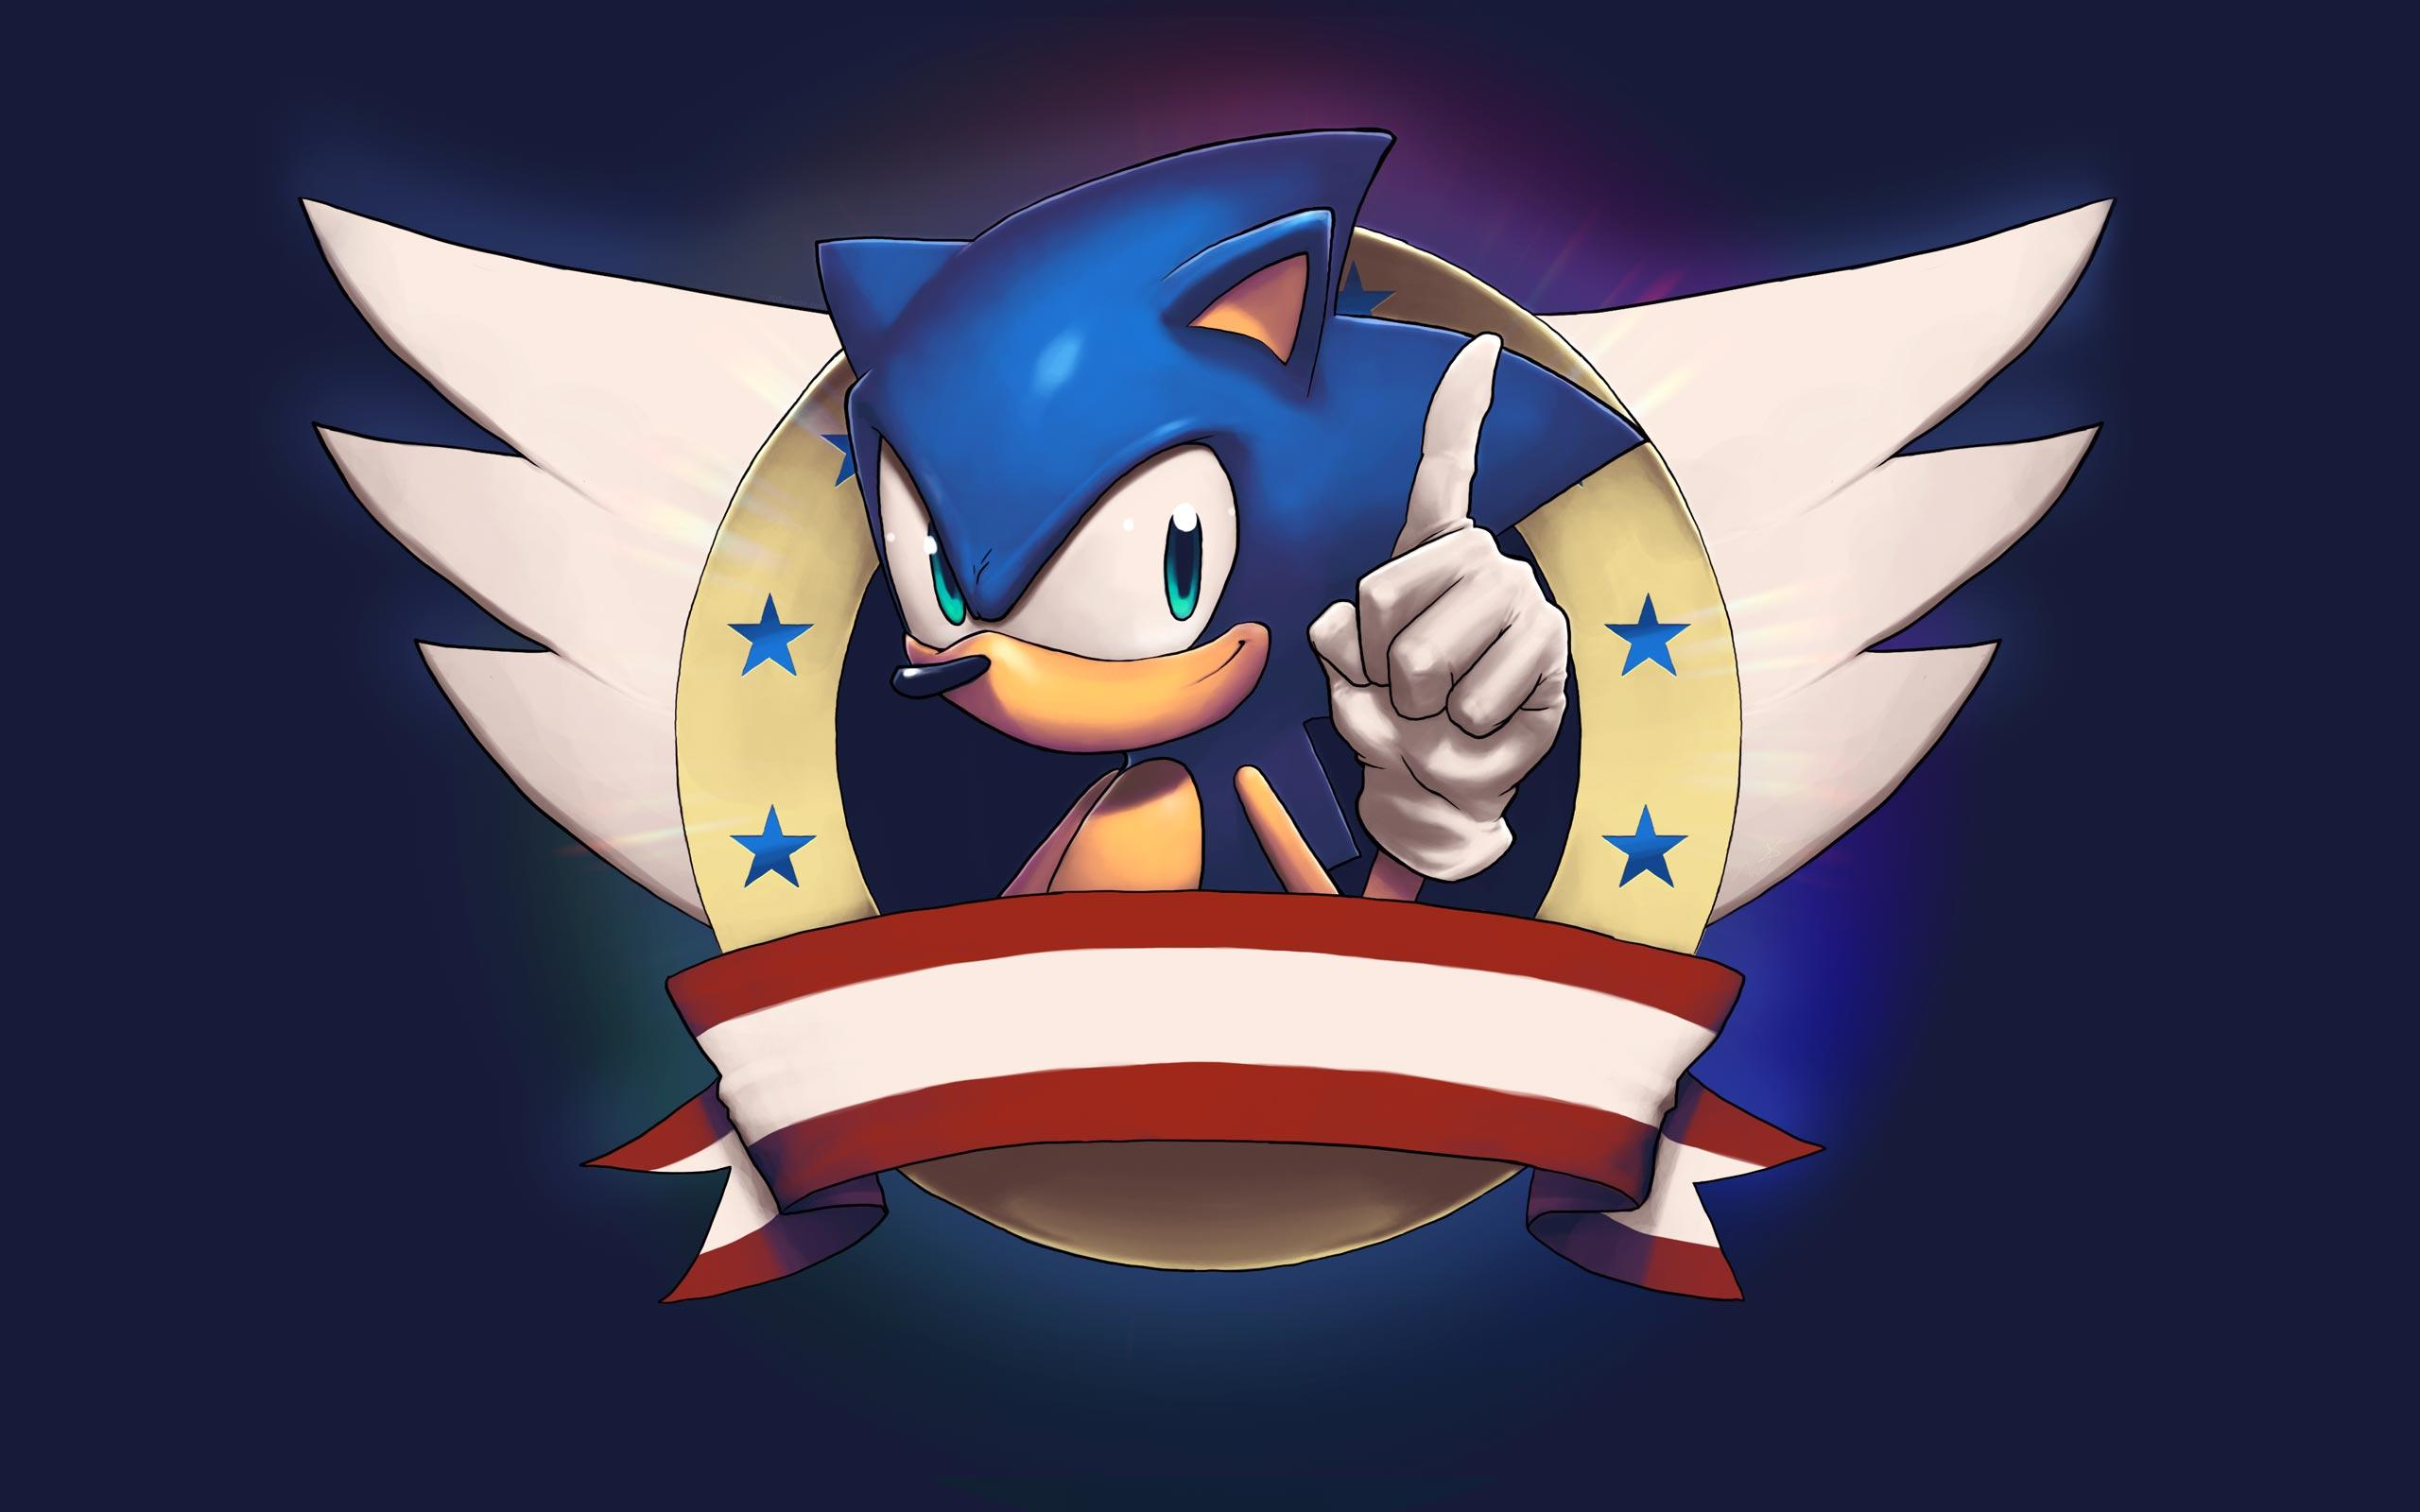 Sonic The Hedgehog Wallpaper 2560x1600 2633